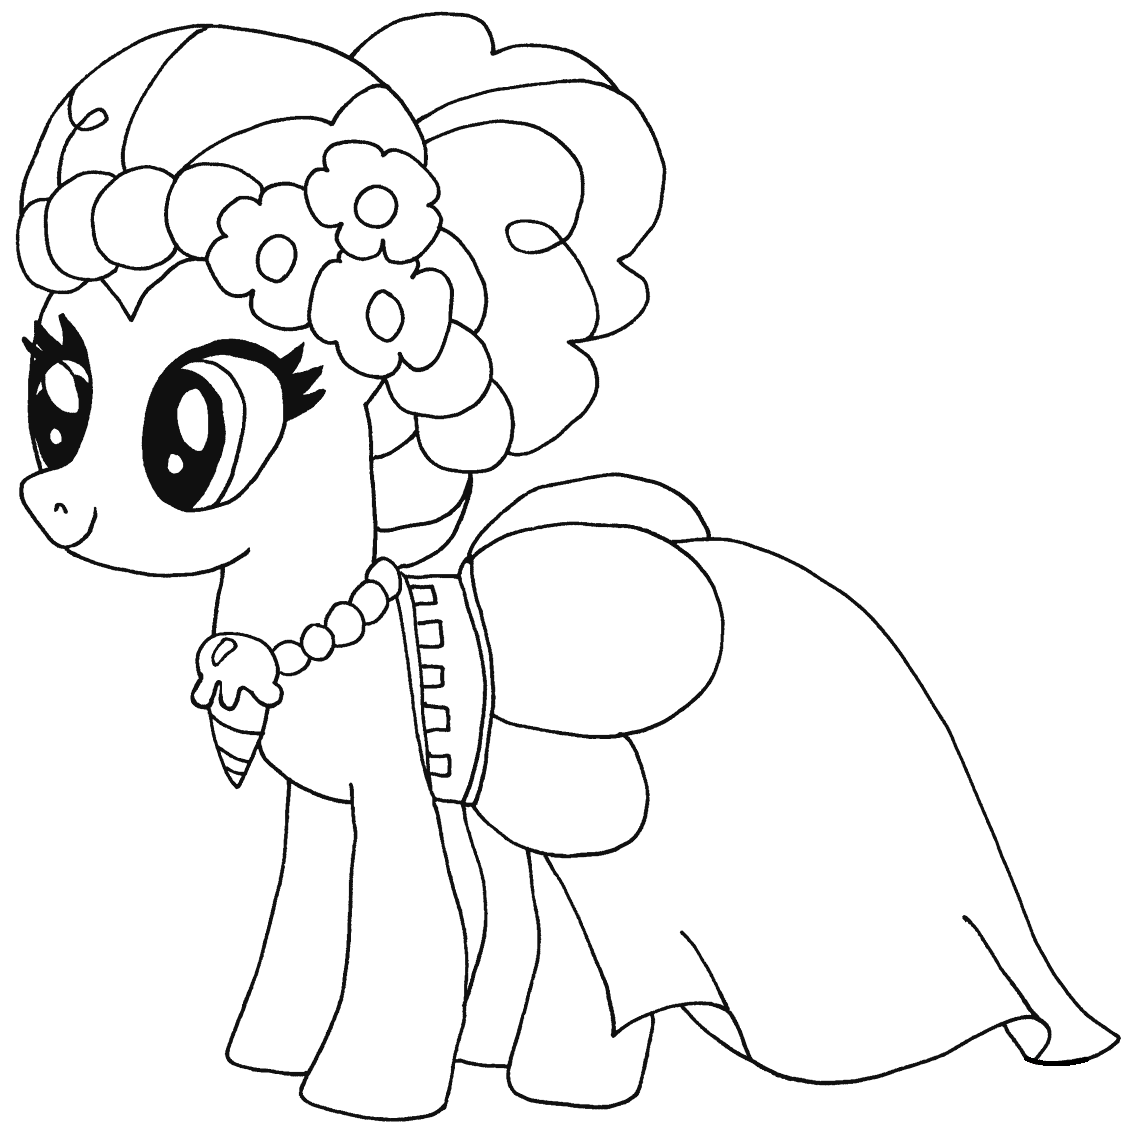 pinkie pie coloring pinkie pie coloring pages my little pony coloring pinkie pie coloring